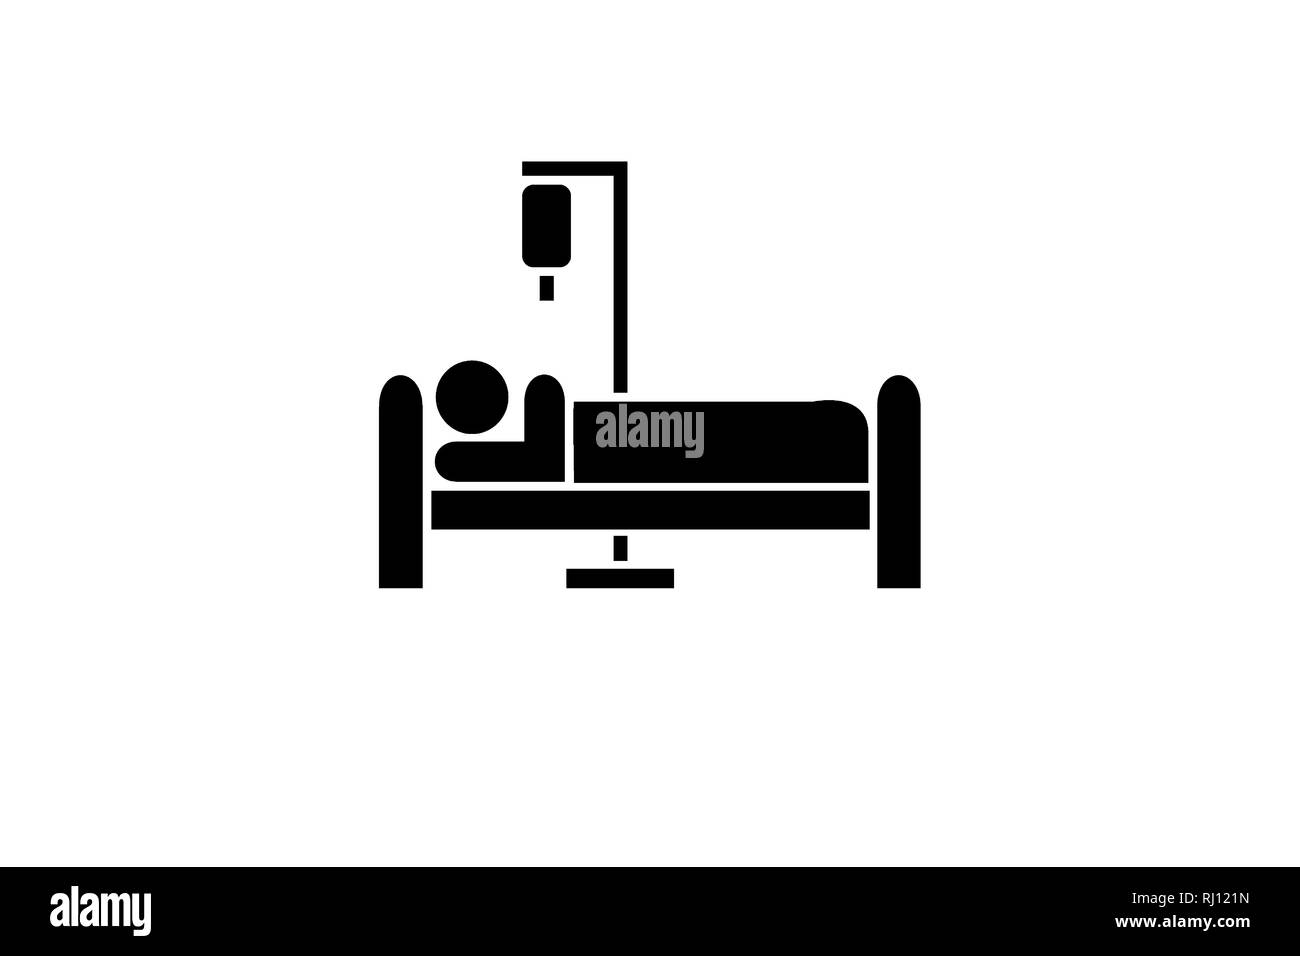 Patient in bed recovery IV icon symbol isolated on white - Stock Image